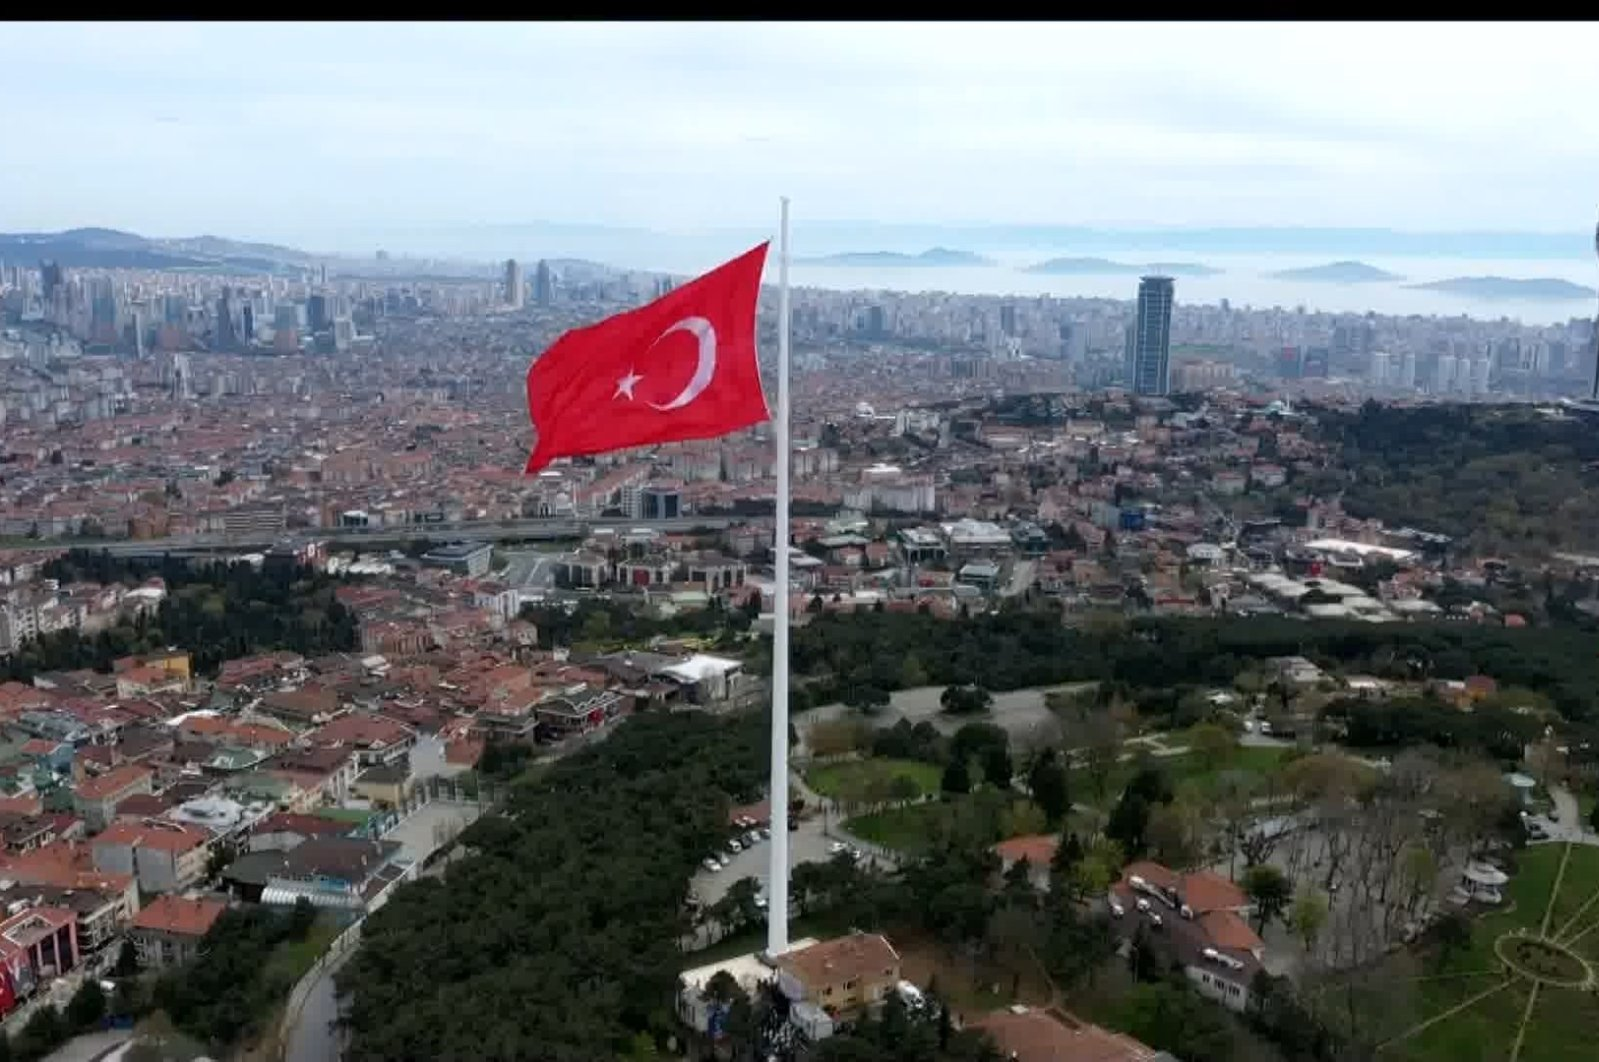 A view of the new flag pole during the ceremony to hoist the flag, in Istanbul, Turkey, April 23, 2021. (DHA PHOTO)